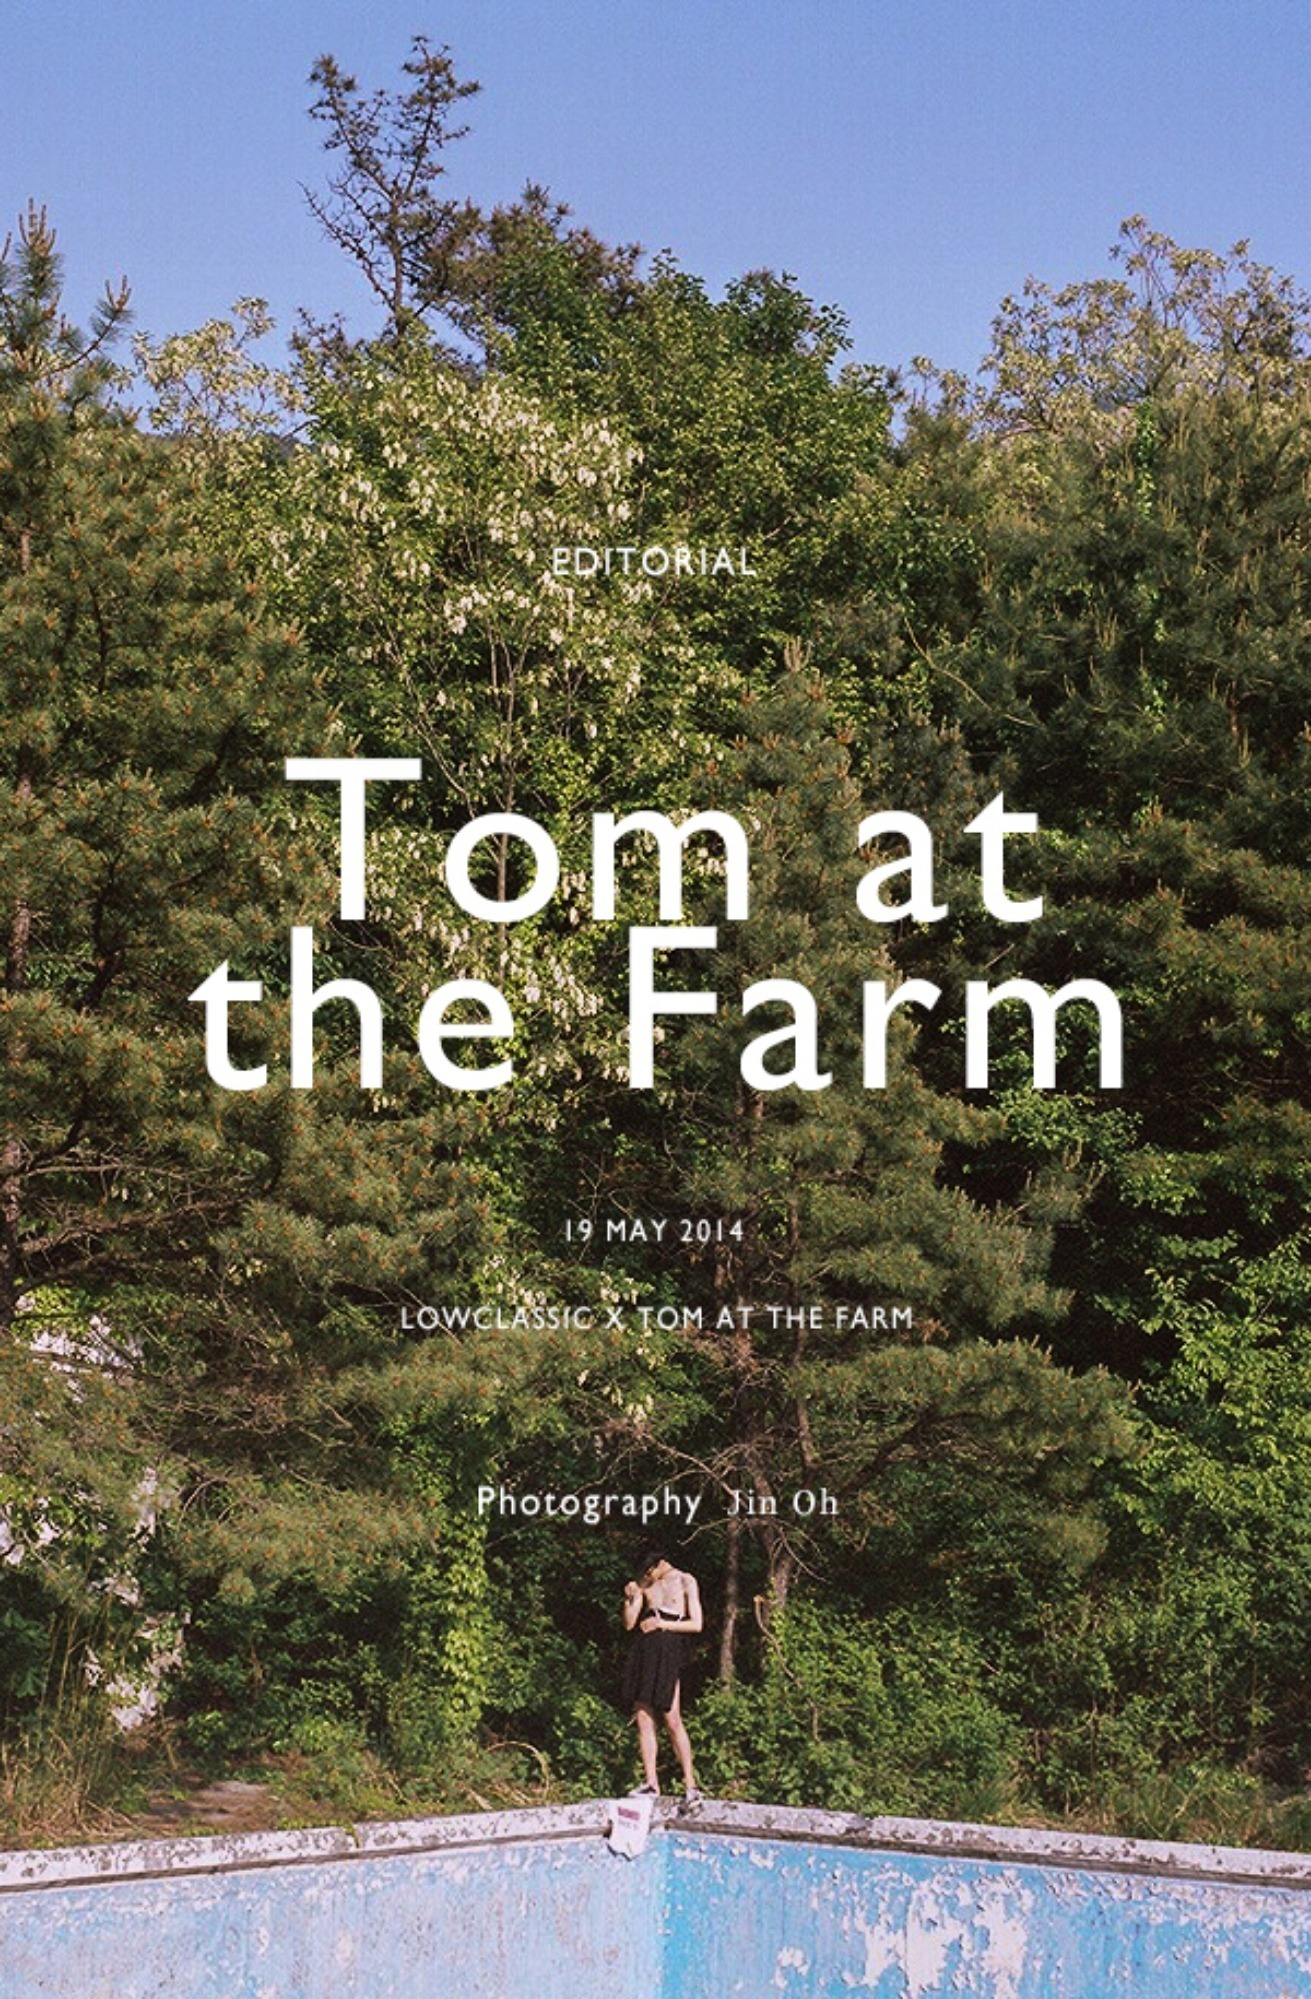 LOW CLASSIC X Tom at the farm